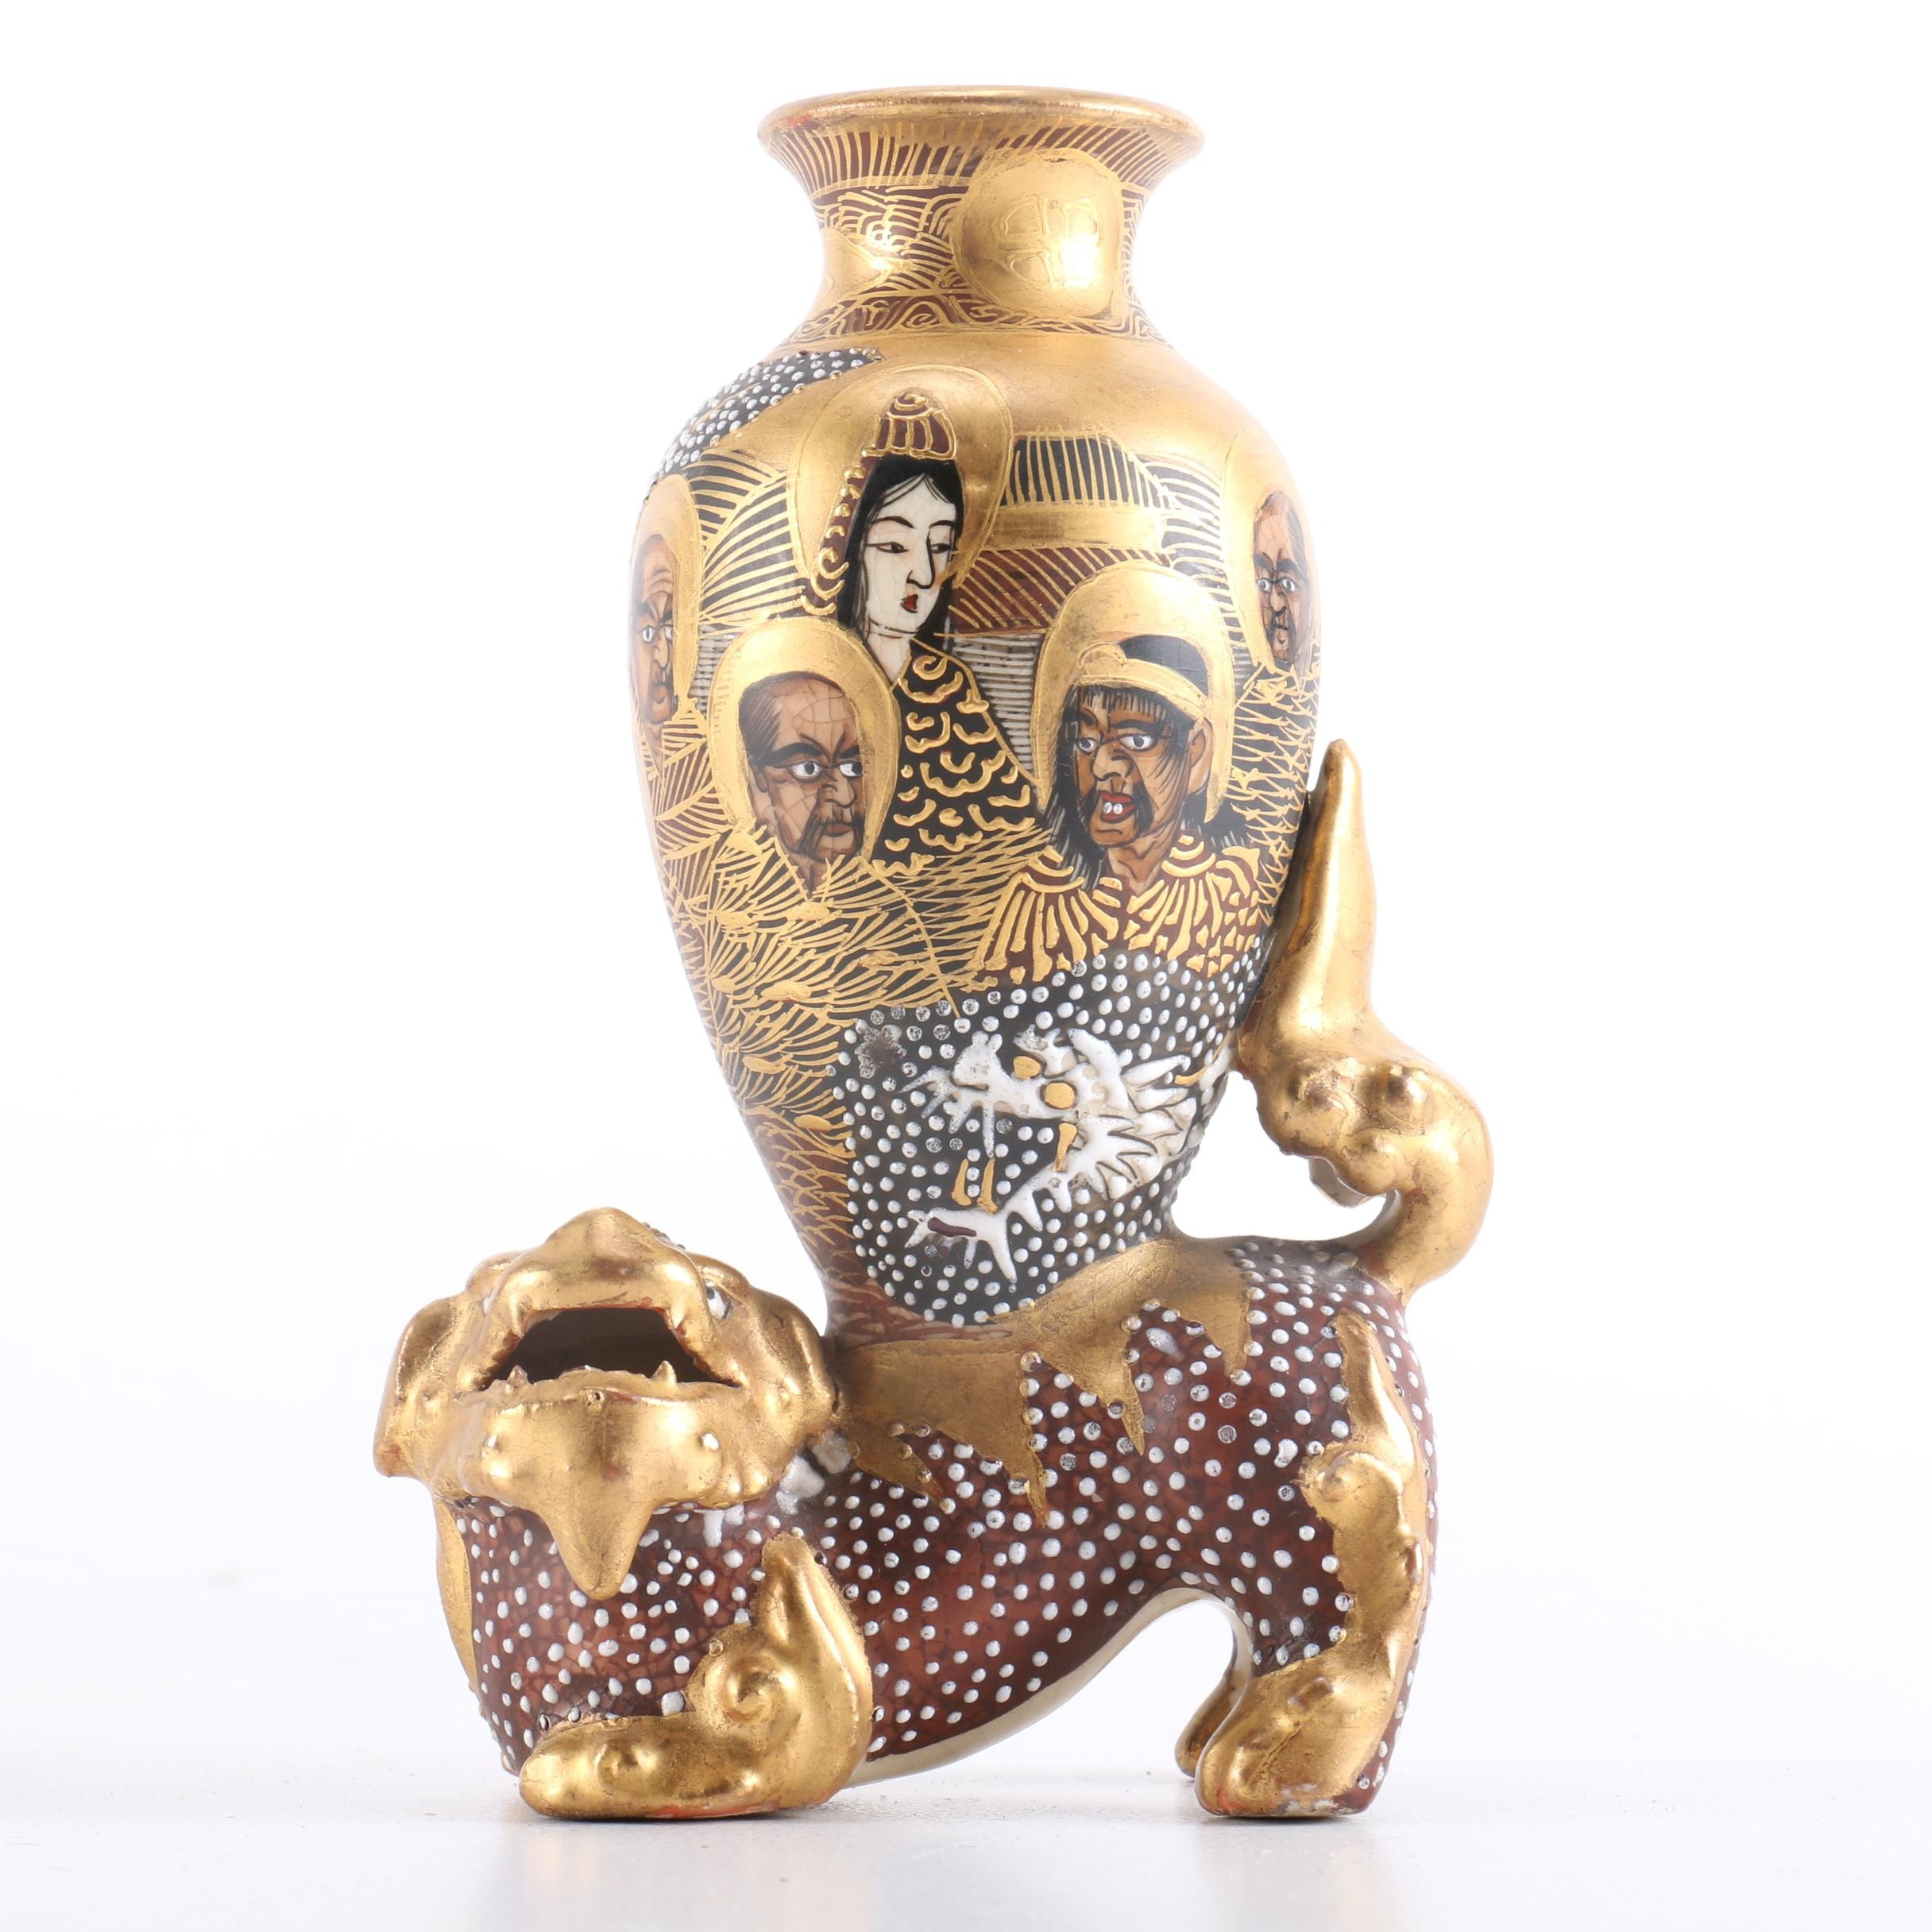 Japanese Satsuma Ceramic Vase with a Guardian Lion